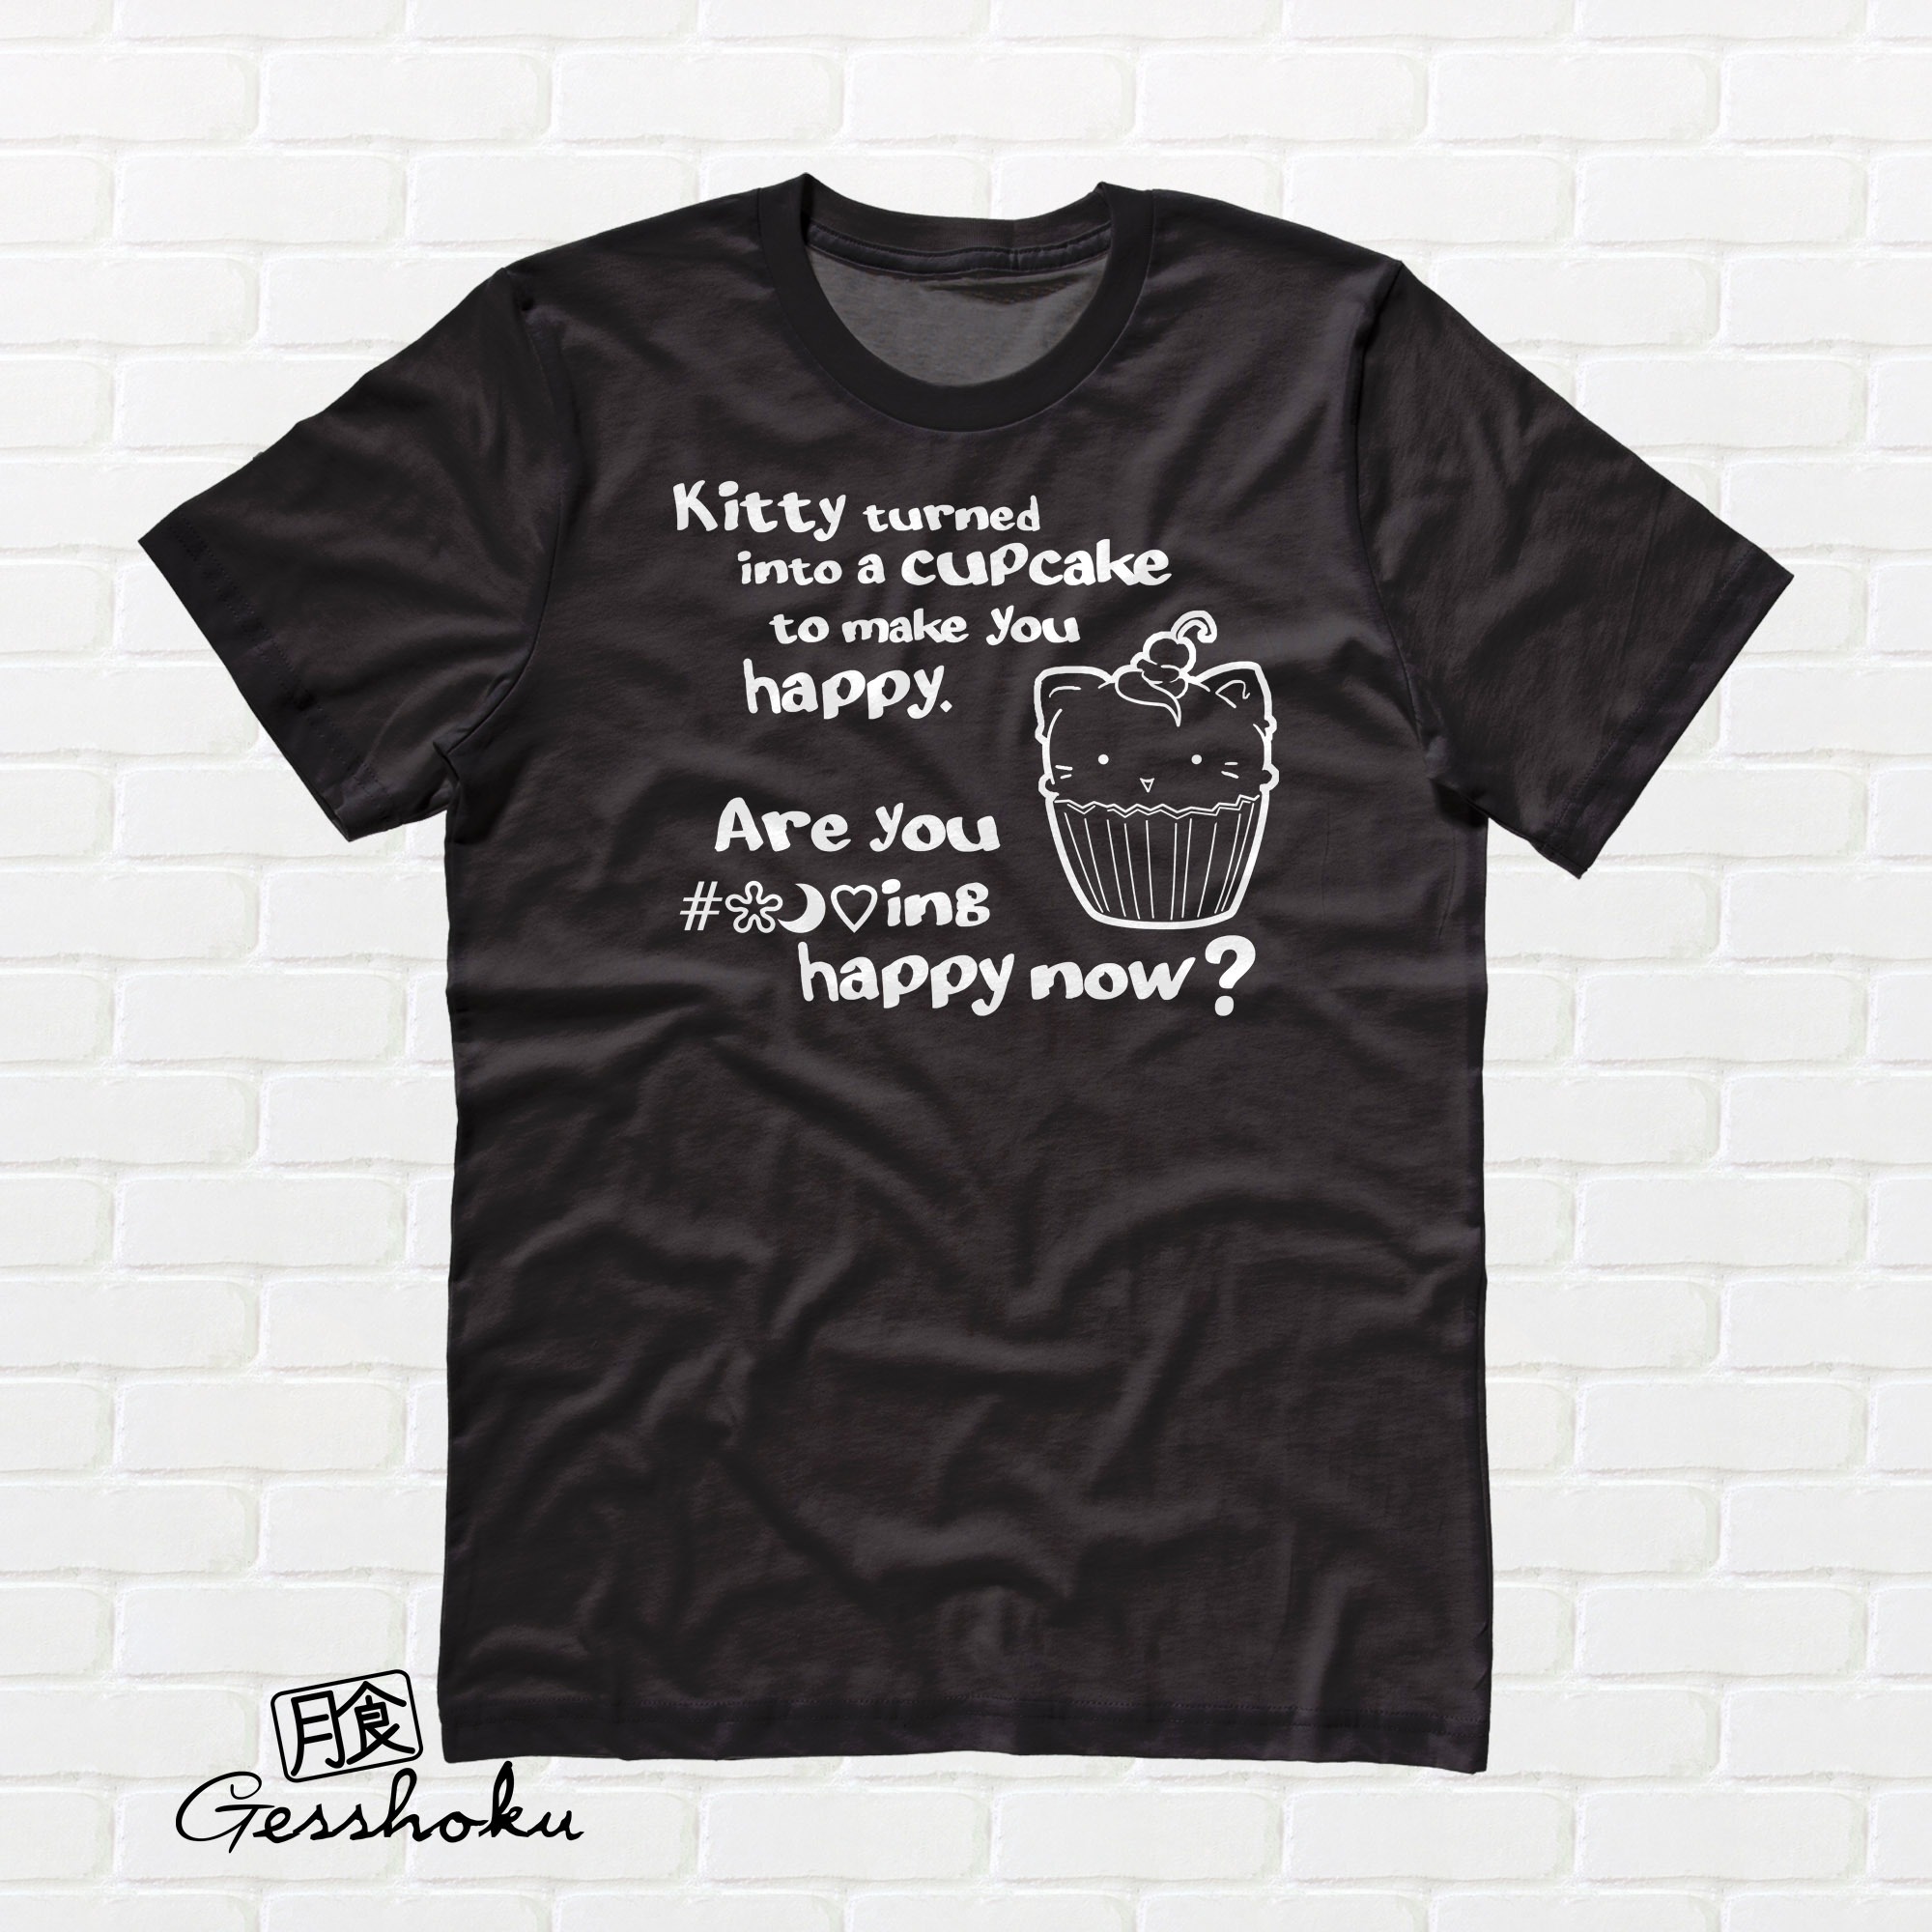 Kitty Turned into a Cupcake T-shirt - Black